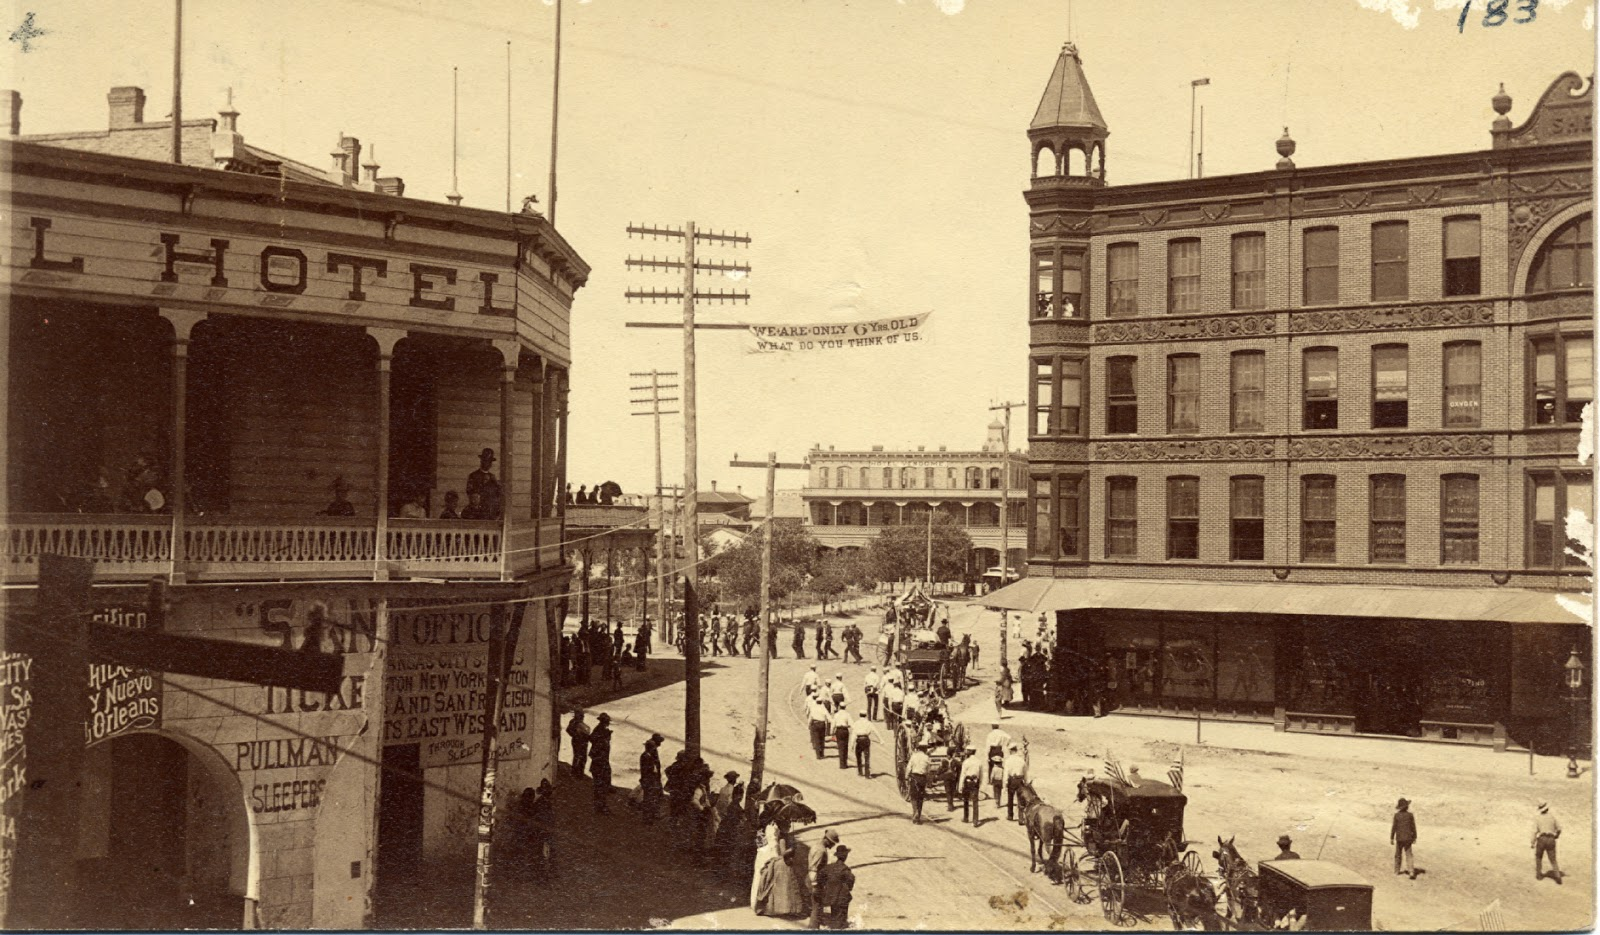 El paso plaza in center back around 1890s photo collection of the el